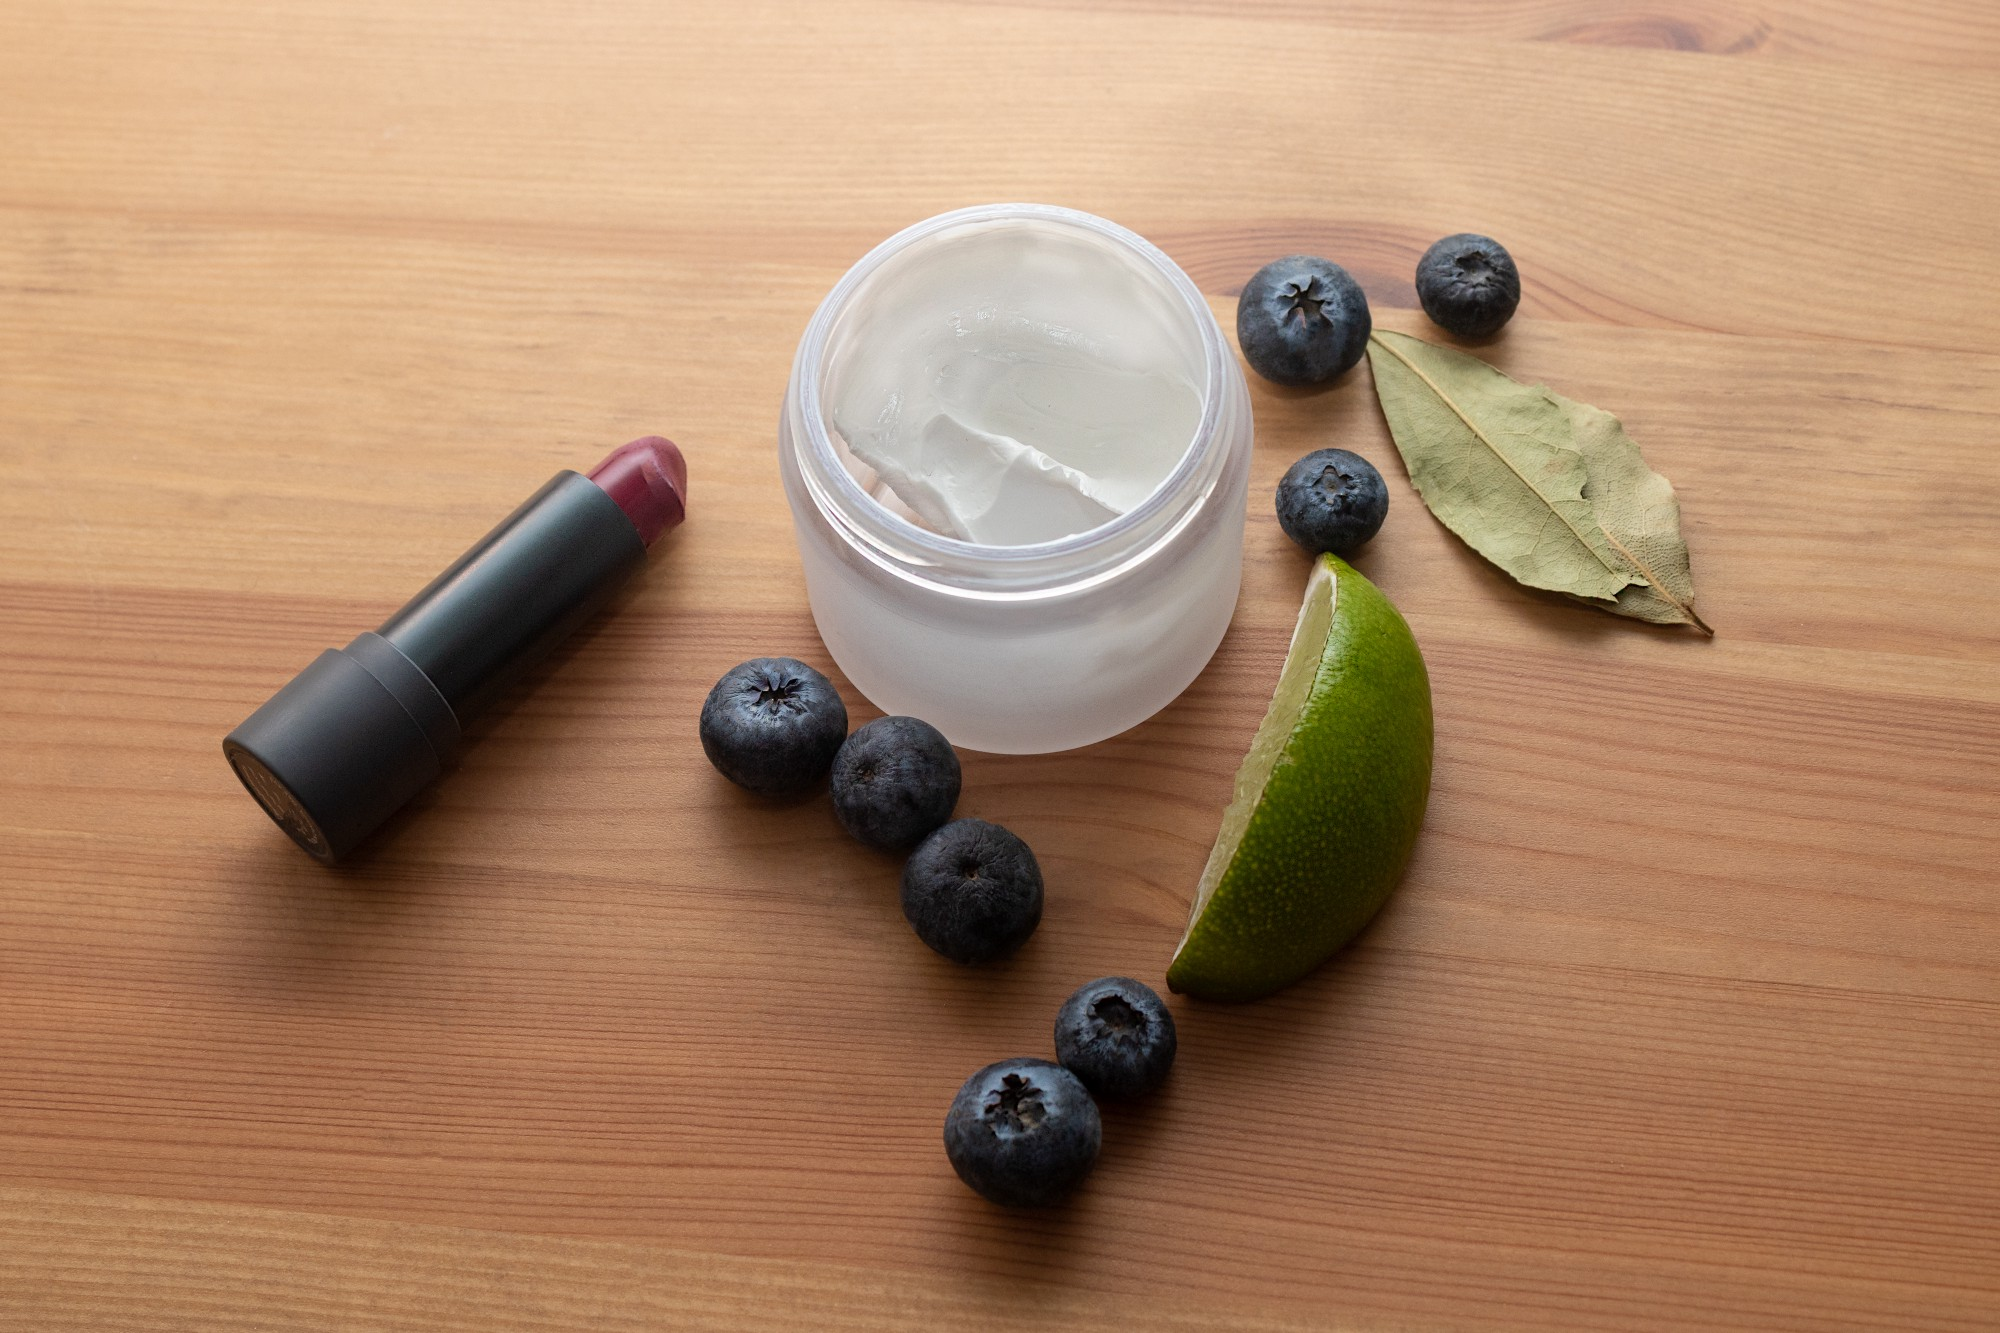 Cream and lipstick sitting on a wood background surrounded by fruit and leaves.